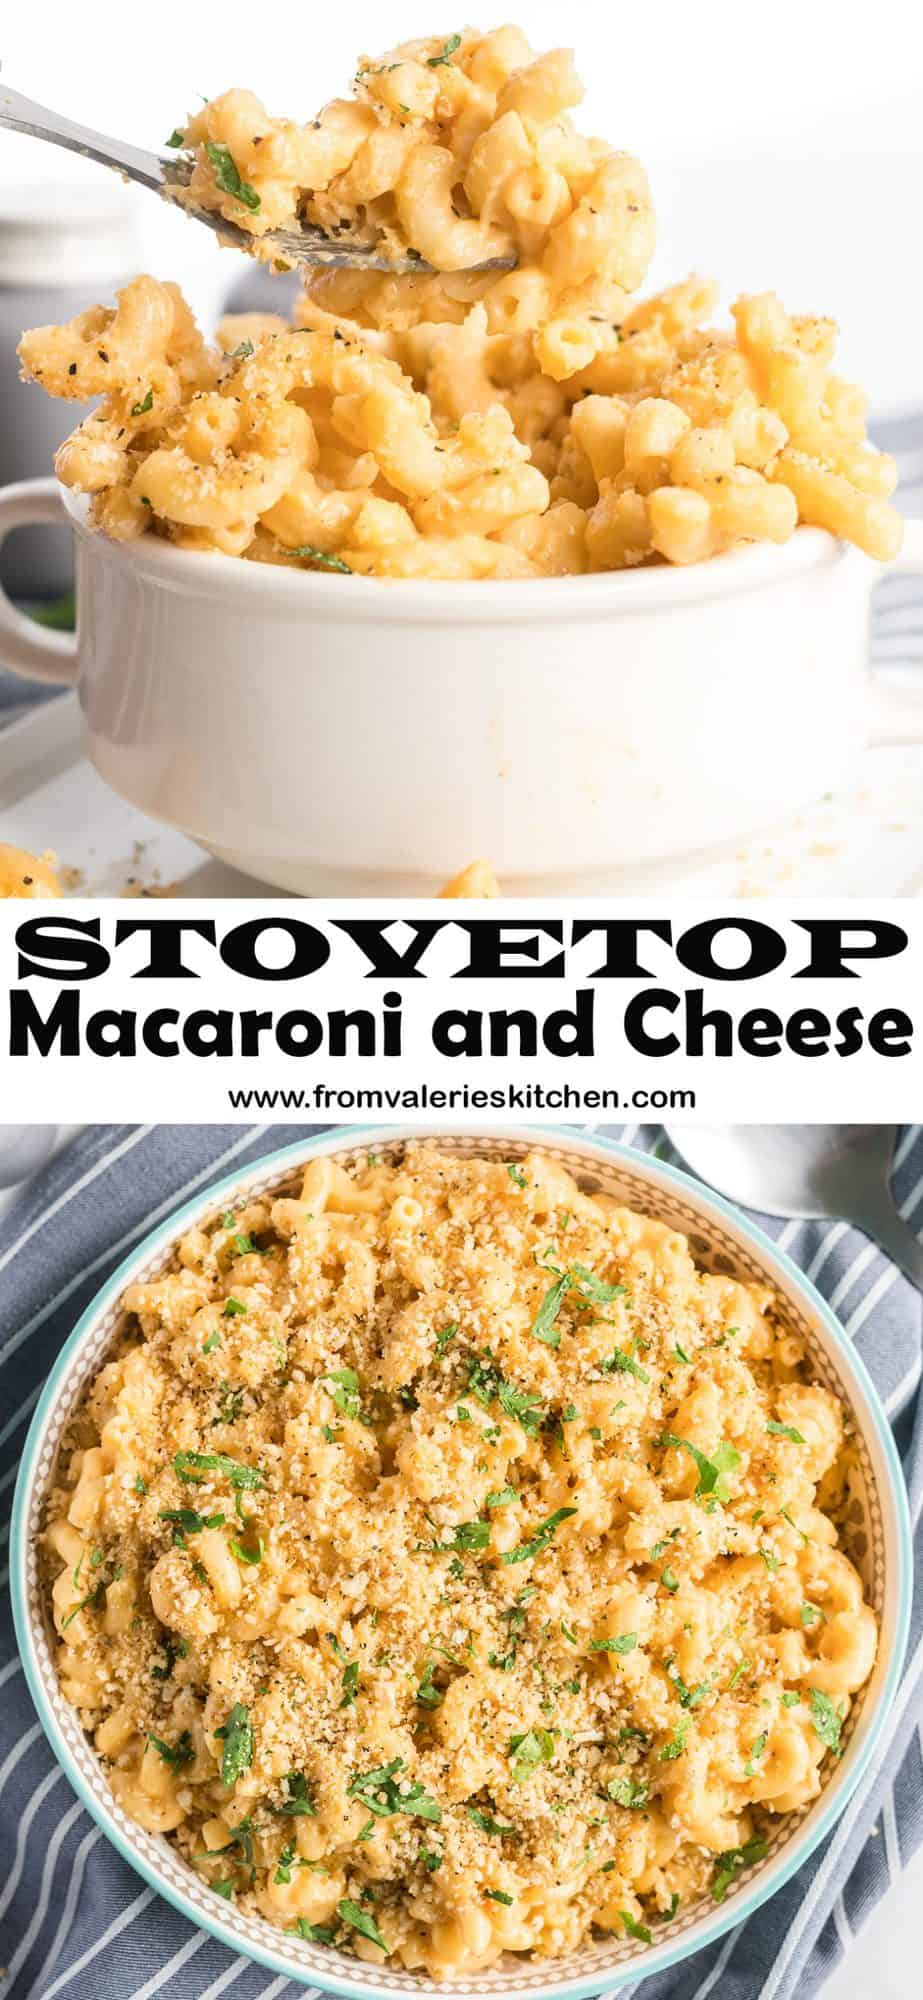 A two image vertical collage of Stovetop Macaroni and Cheese with overlay text.